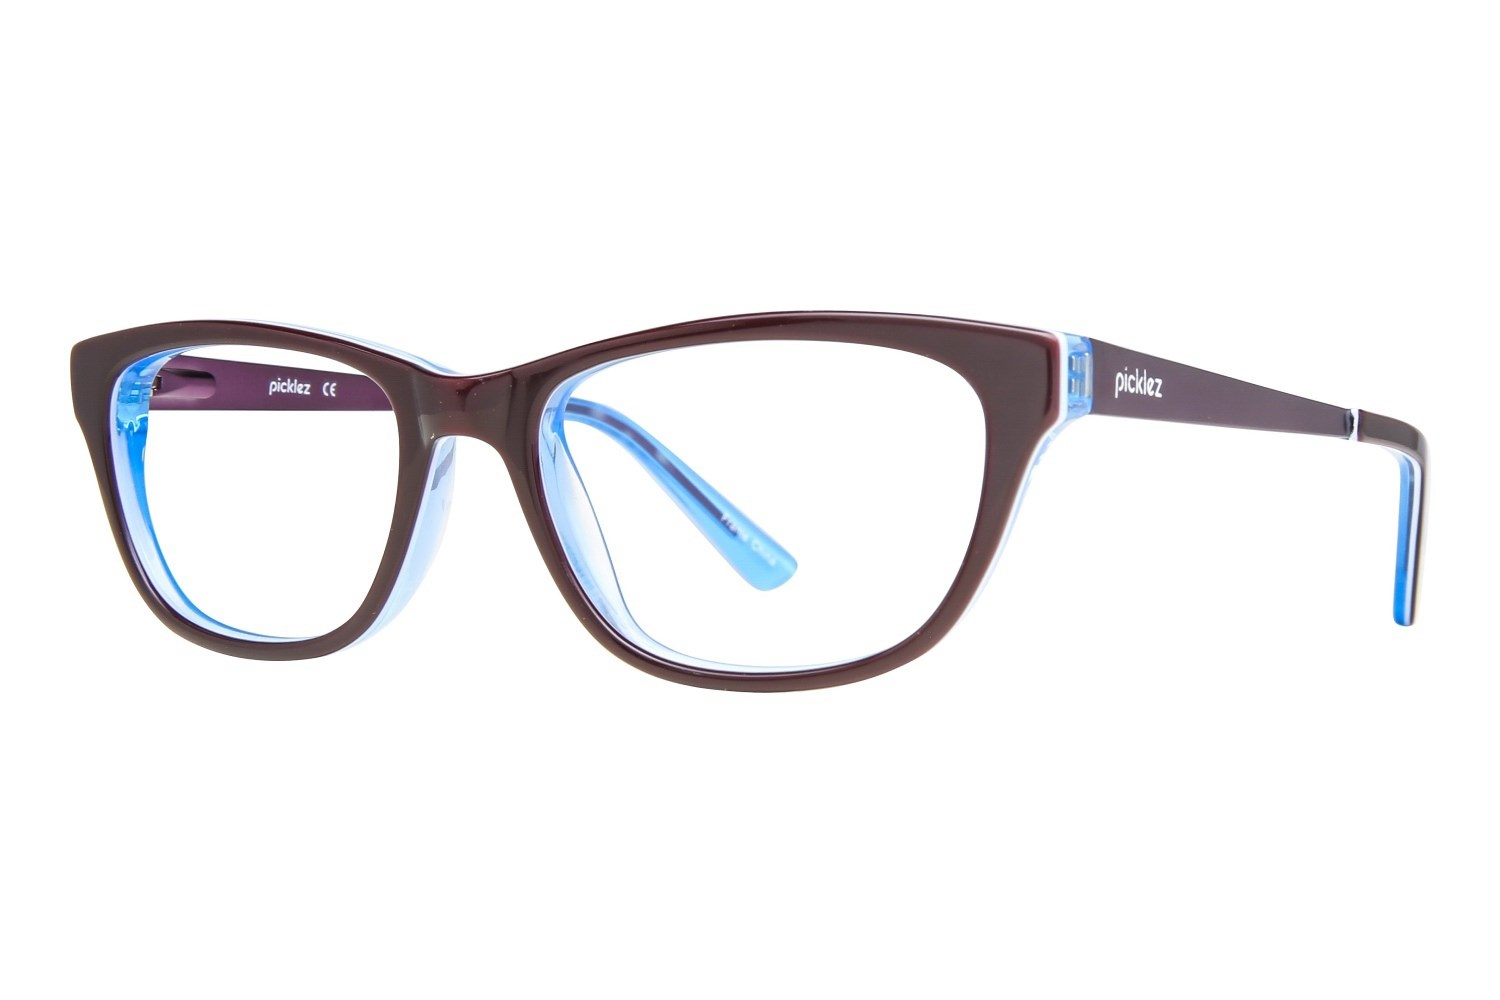 Eyeglass Frame Large : Extra Large Ladies Eyeglass Frames - Search